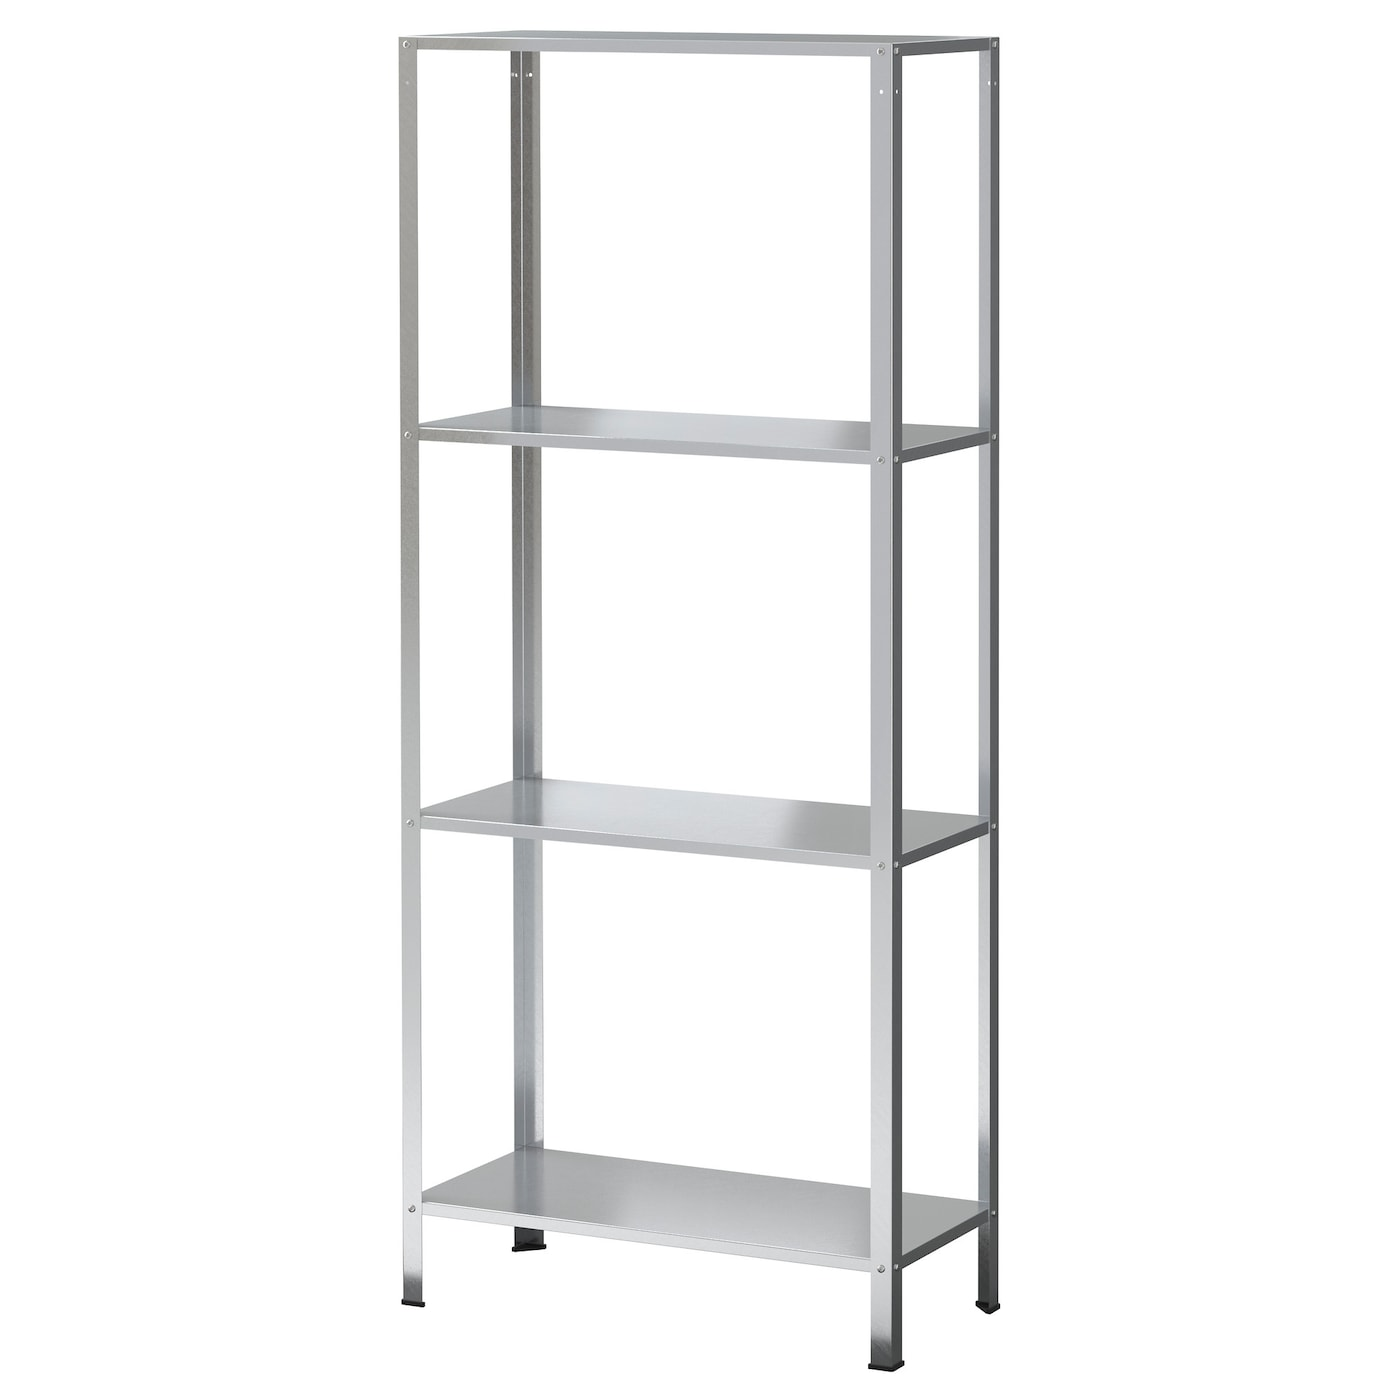 IKEA HYLLIS shelving unit Suitable for both indoor and outdoor use.